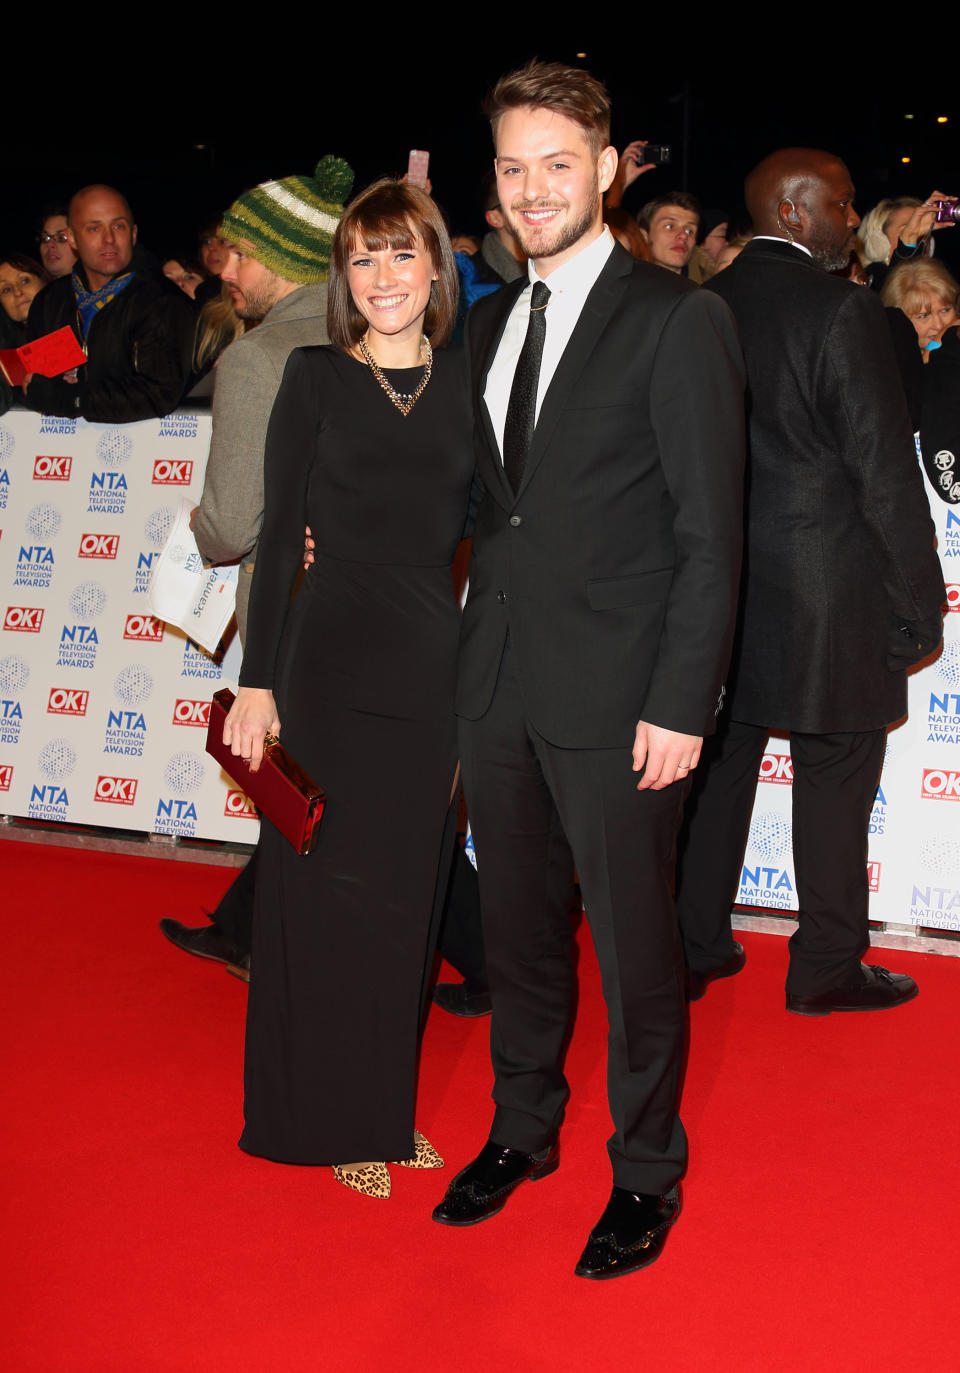 LONDON, ENGLAND - JANUARY 23: Cat Dresser and John Whaite attend the National Television Awards at 02 Arena on January 23, 2013 in London, England.  (Photo by Mike Marsland/WireImage)